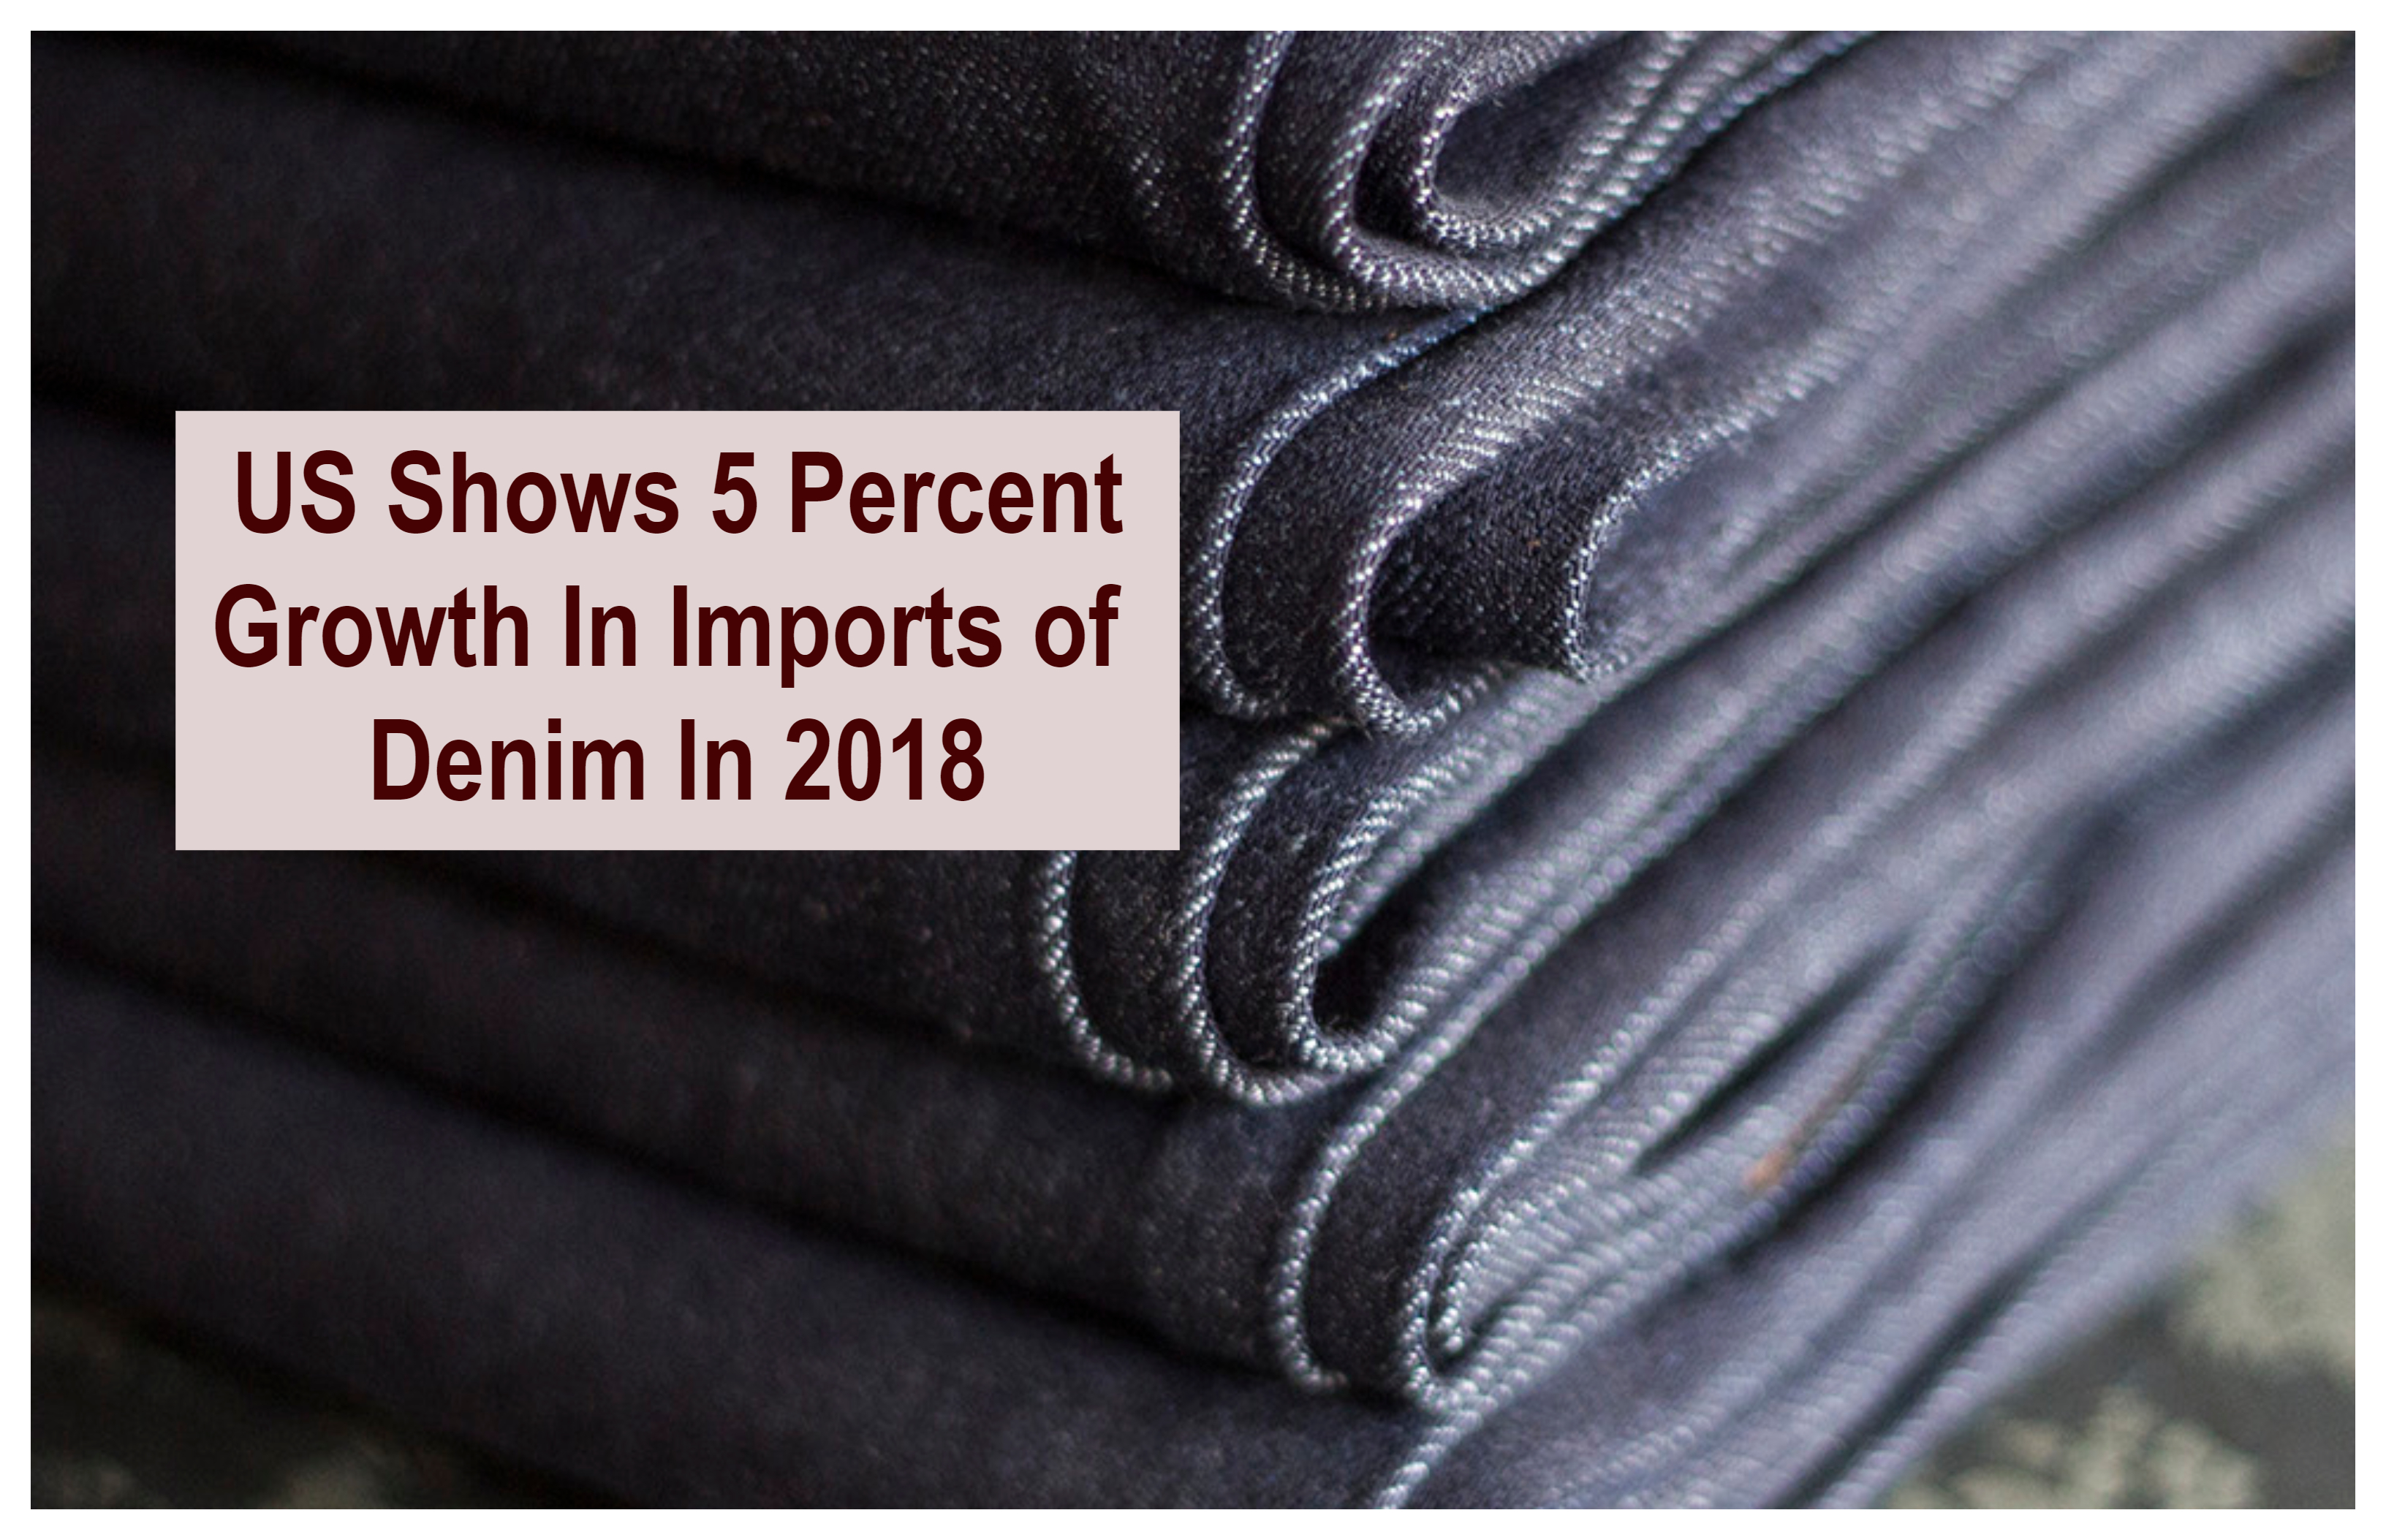 US Shows 5 Percent Growth In Imports of Denim In 2018